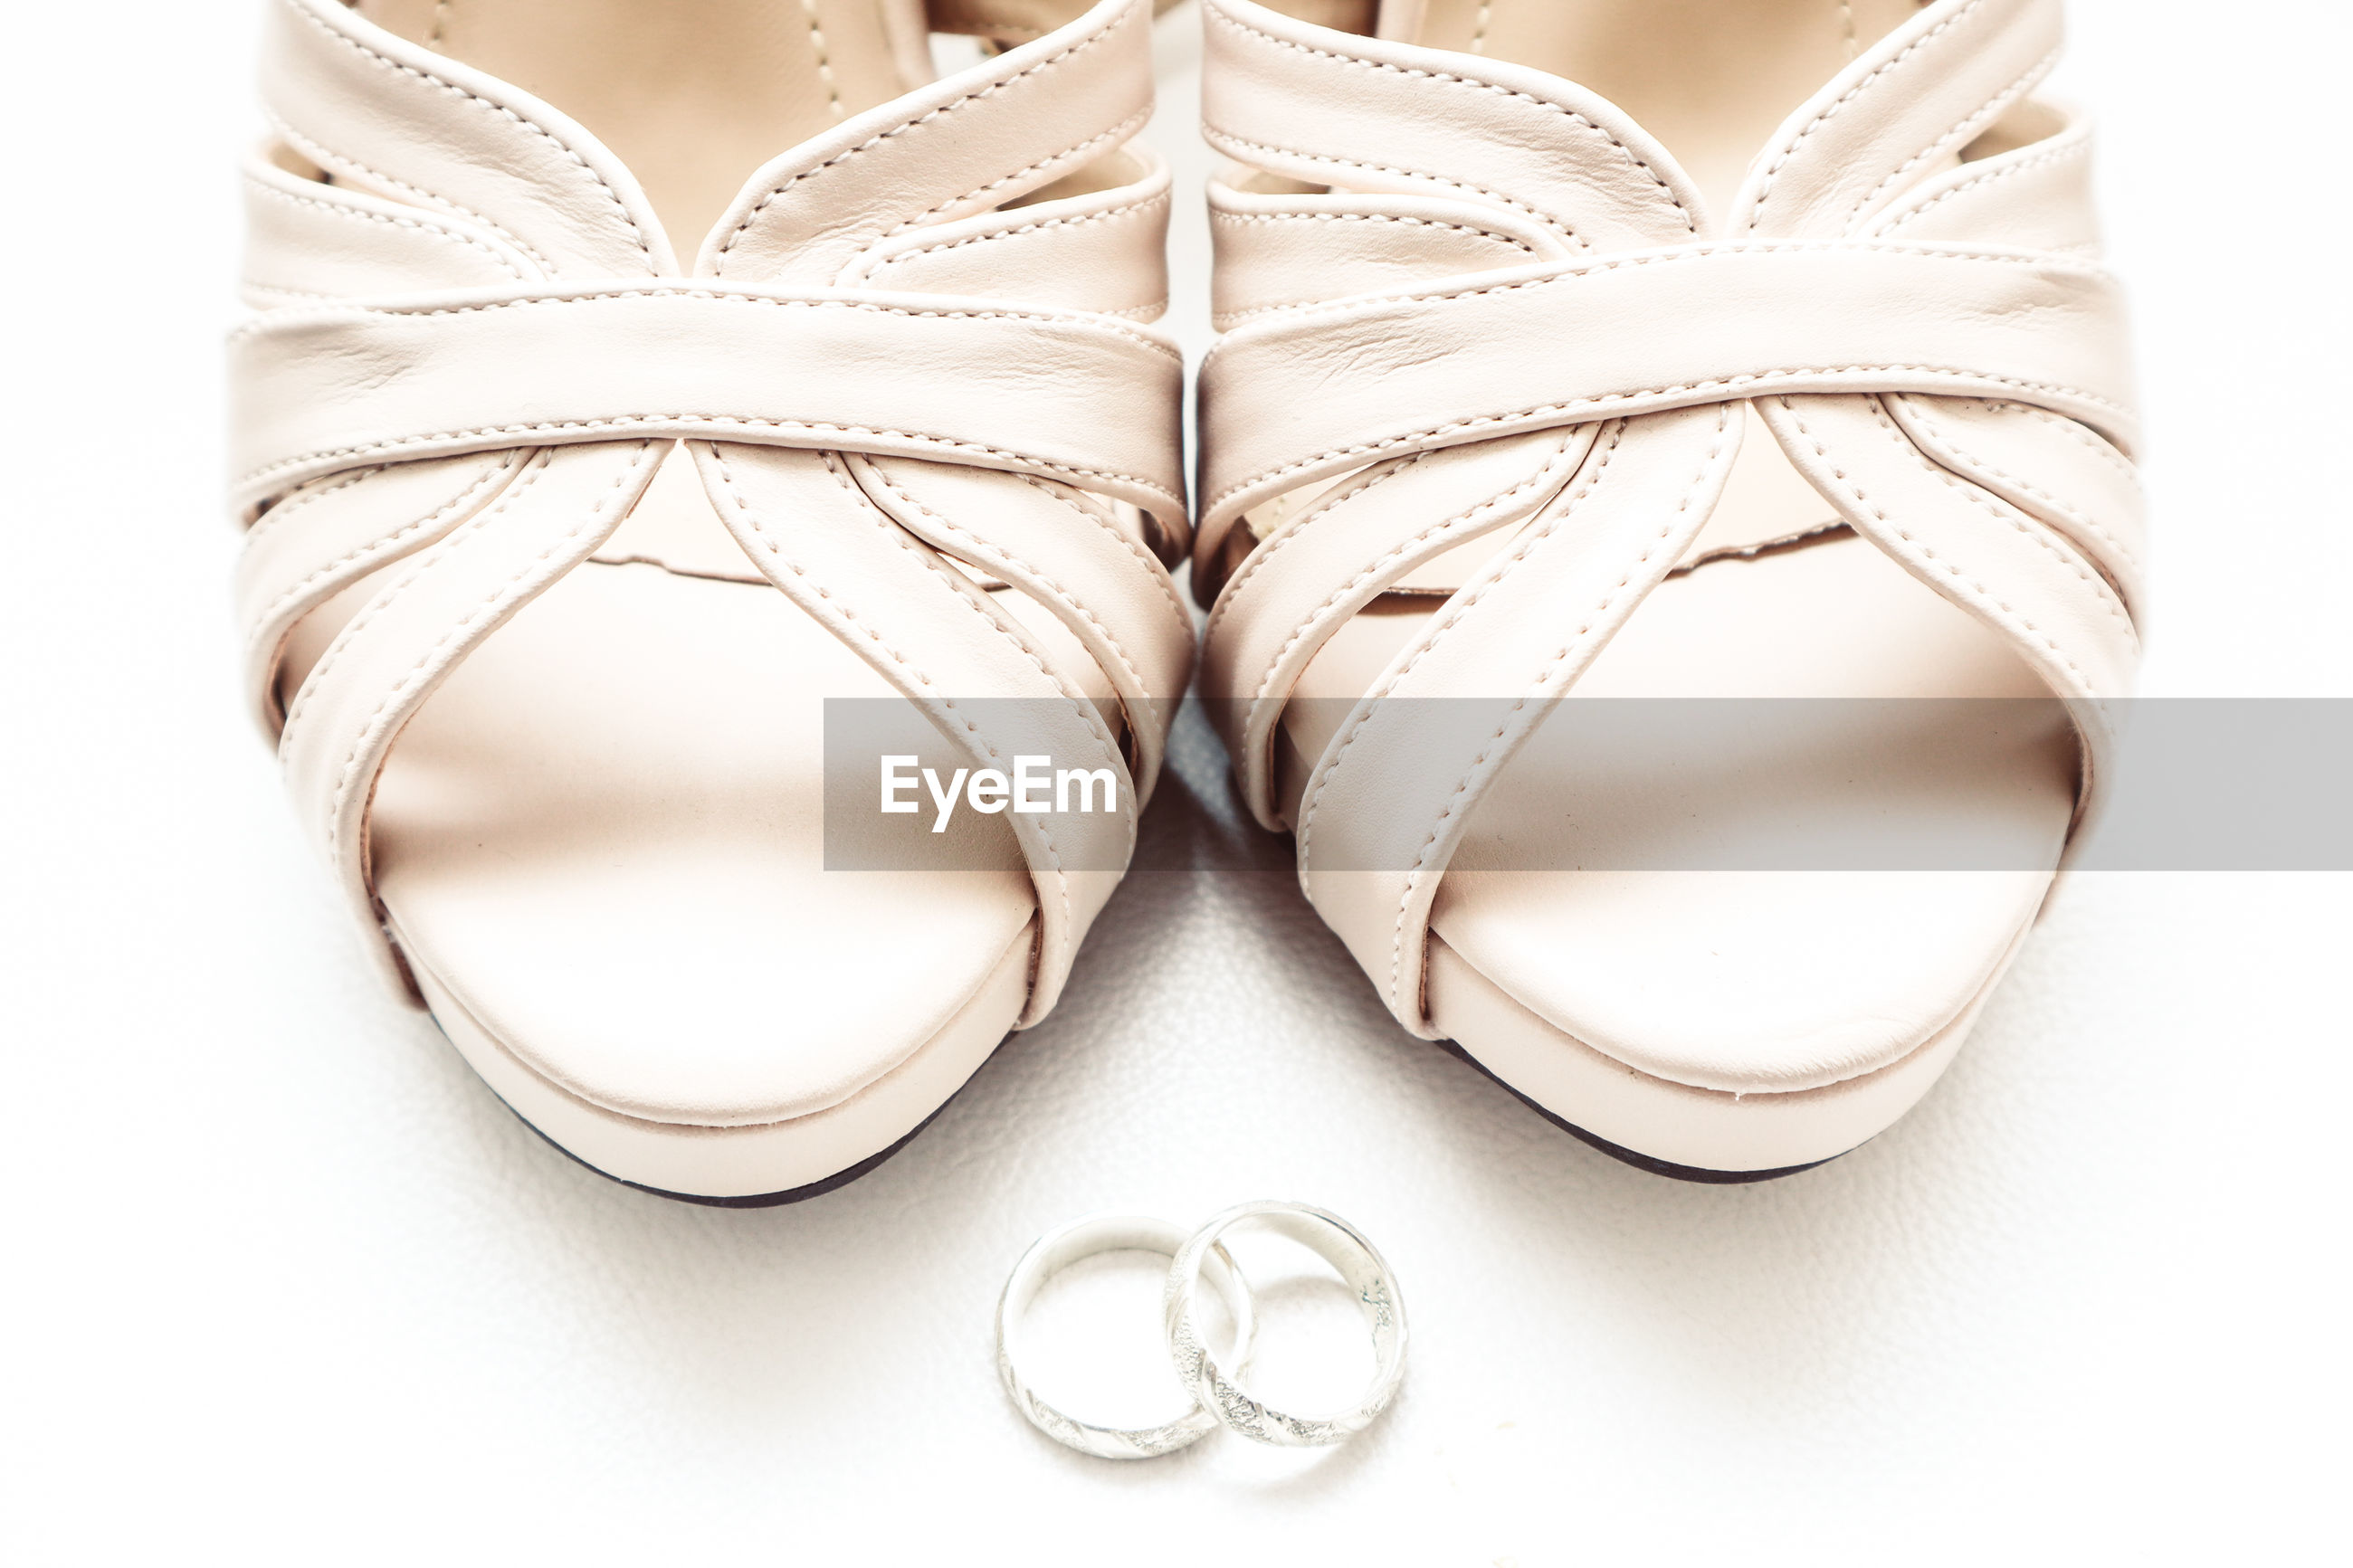 HIGH ANGLE VIEW OF SHOES ON WHITE